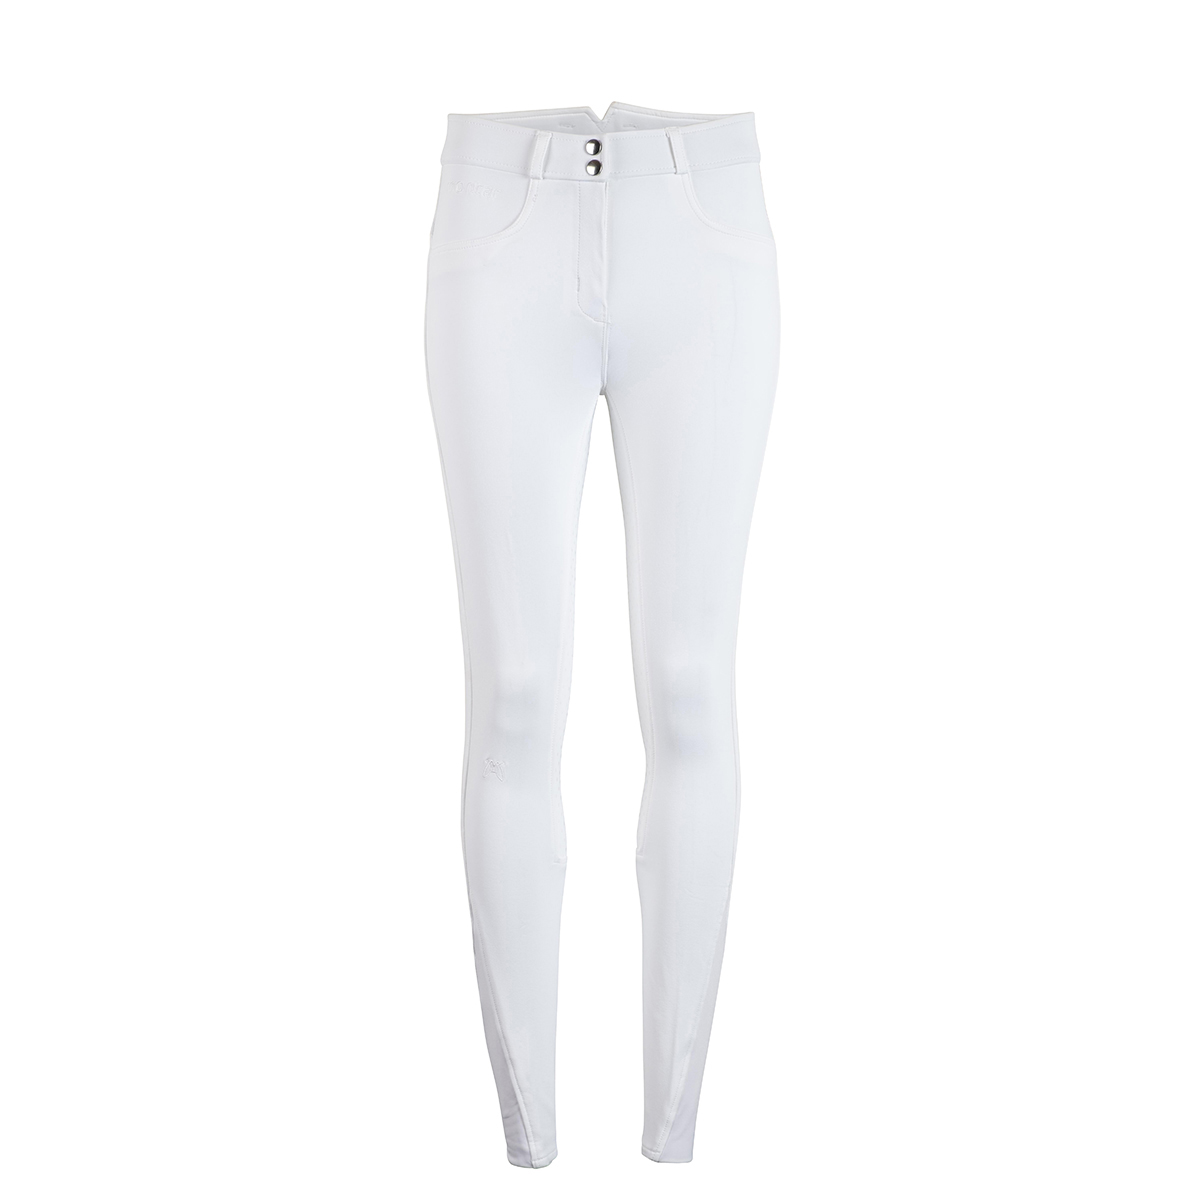 Rijlegging Rebel By Montar Angela Siliconen, 32�in leopard